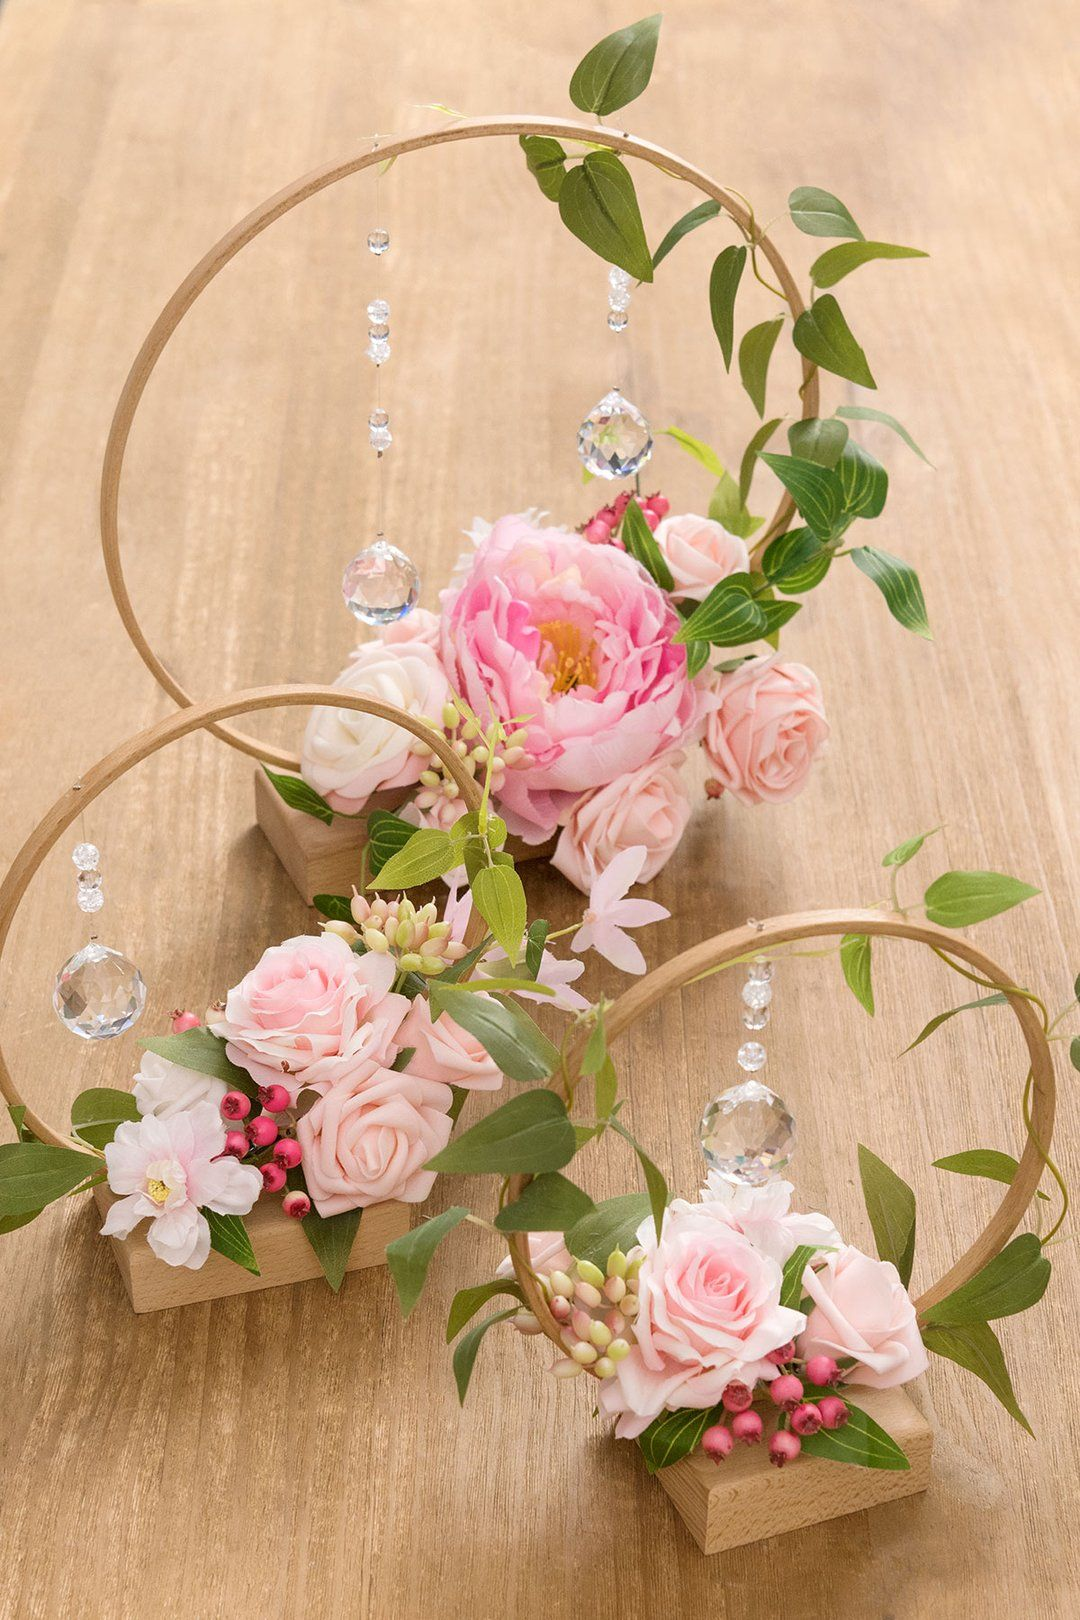 Wood Floral Centerpieces (Set of 3) - French Blush